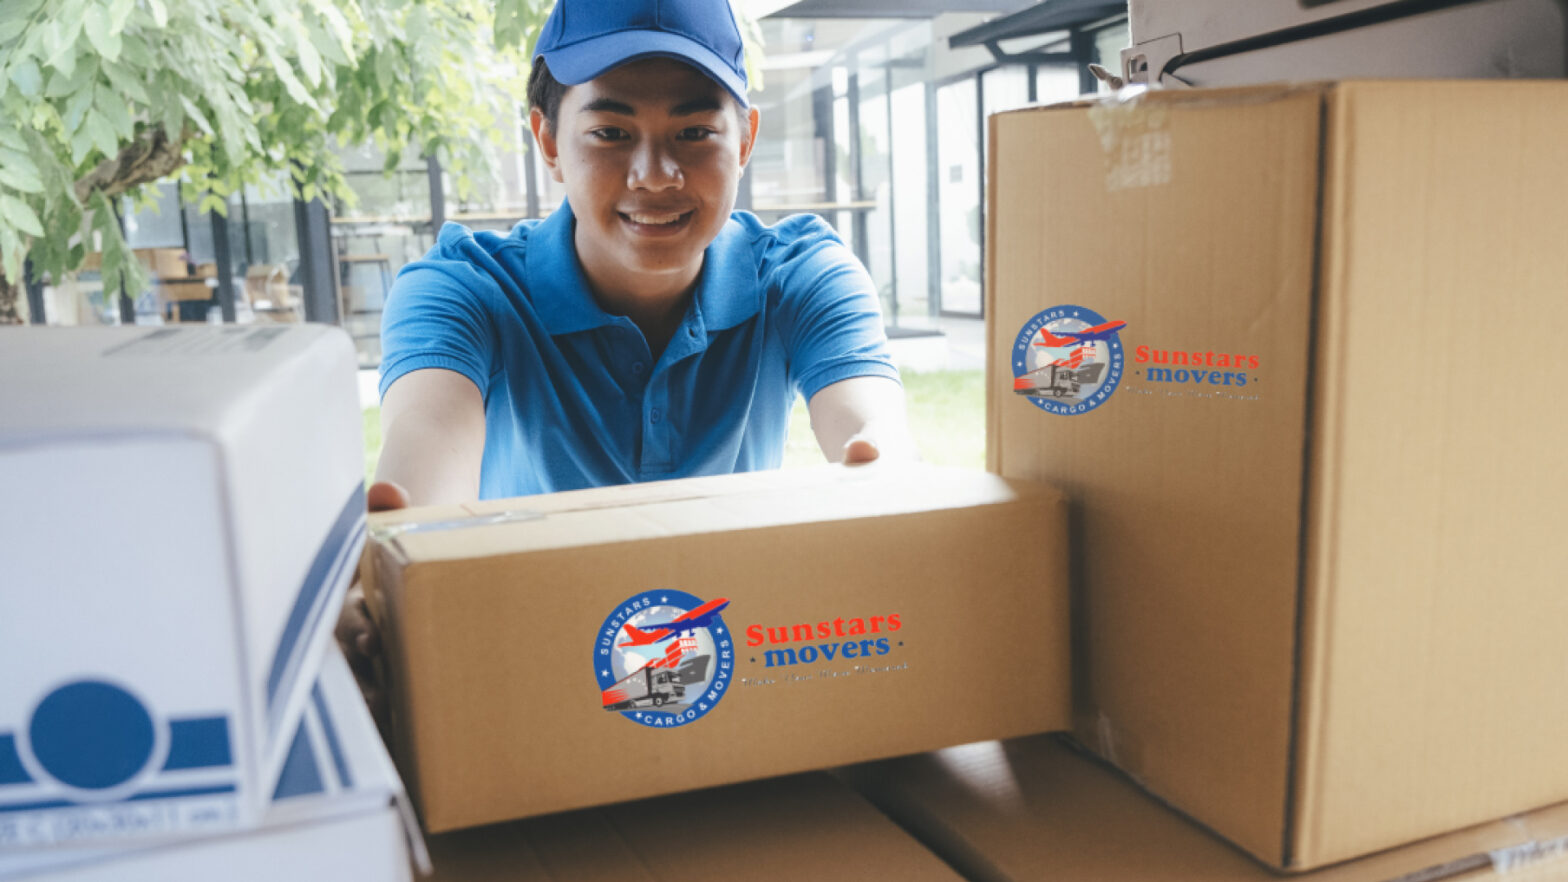 Cheap movers in Abudhabi at sunstars movers